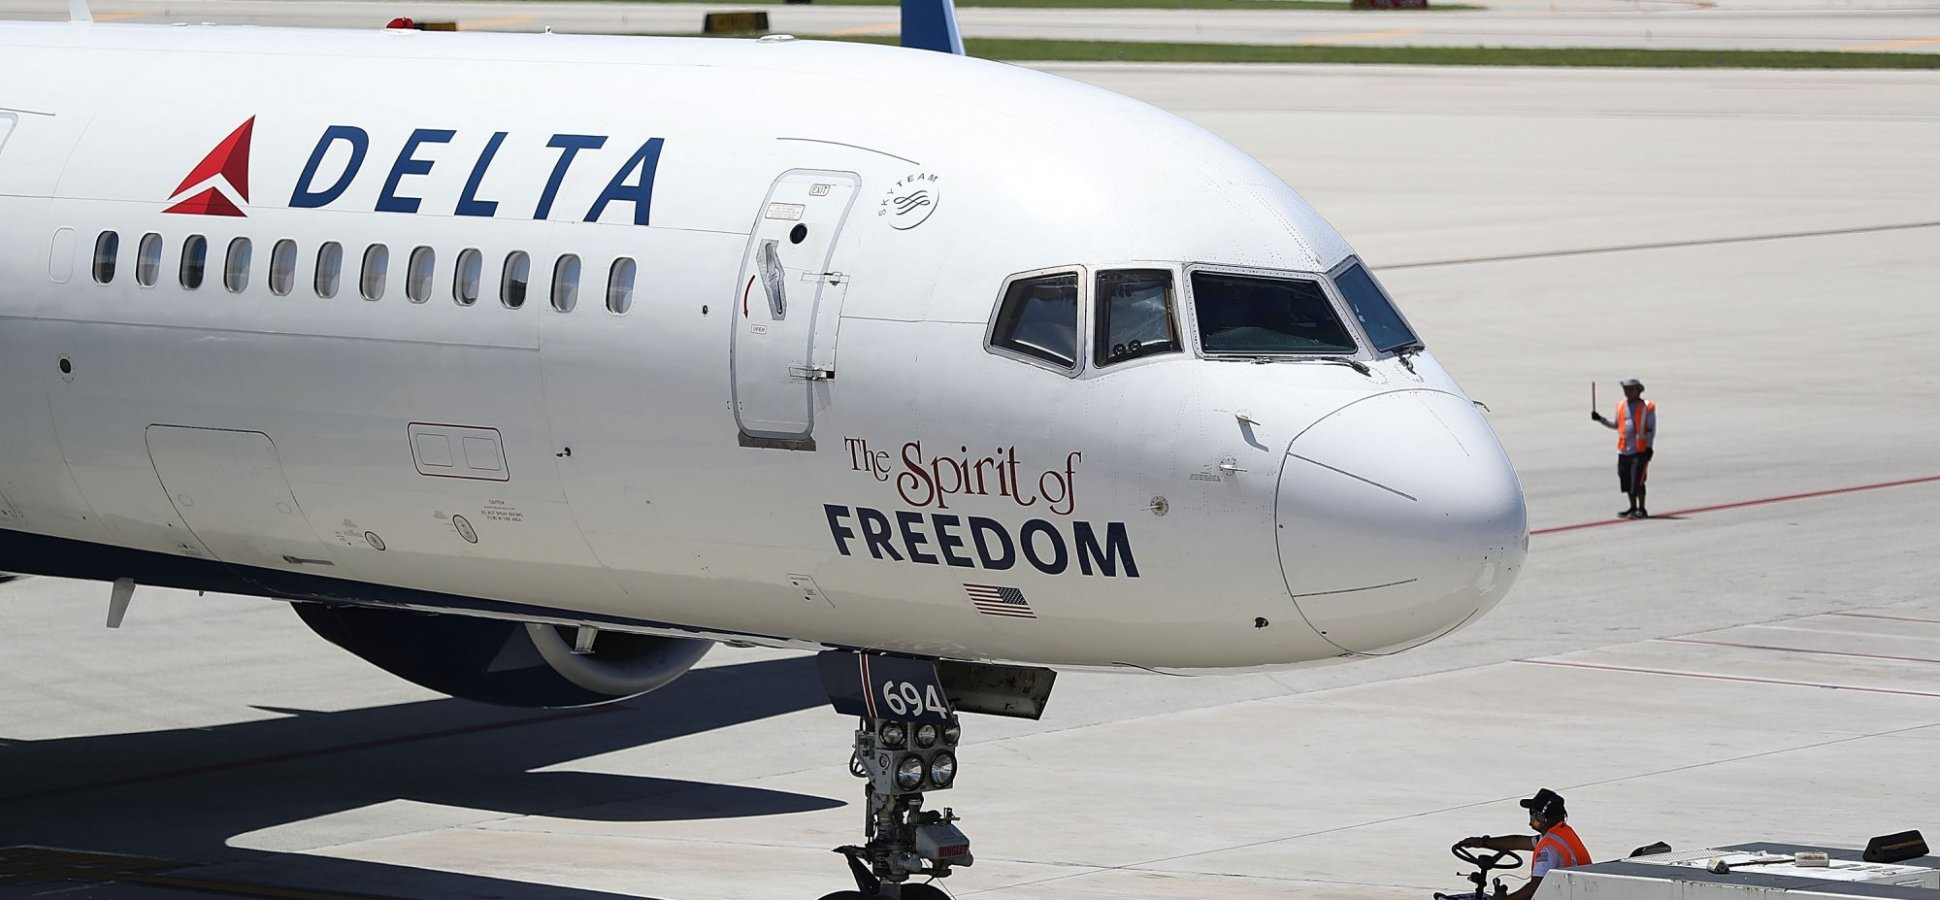 Delta Just Announced Major Upgrades to Inflight Service (That Could Make Passengers on Long International Flights a Lot Happier)